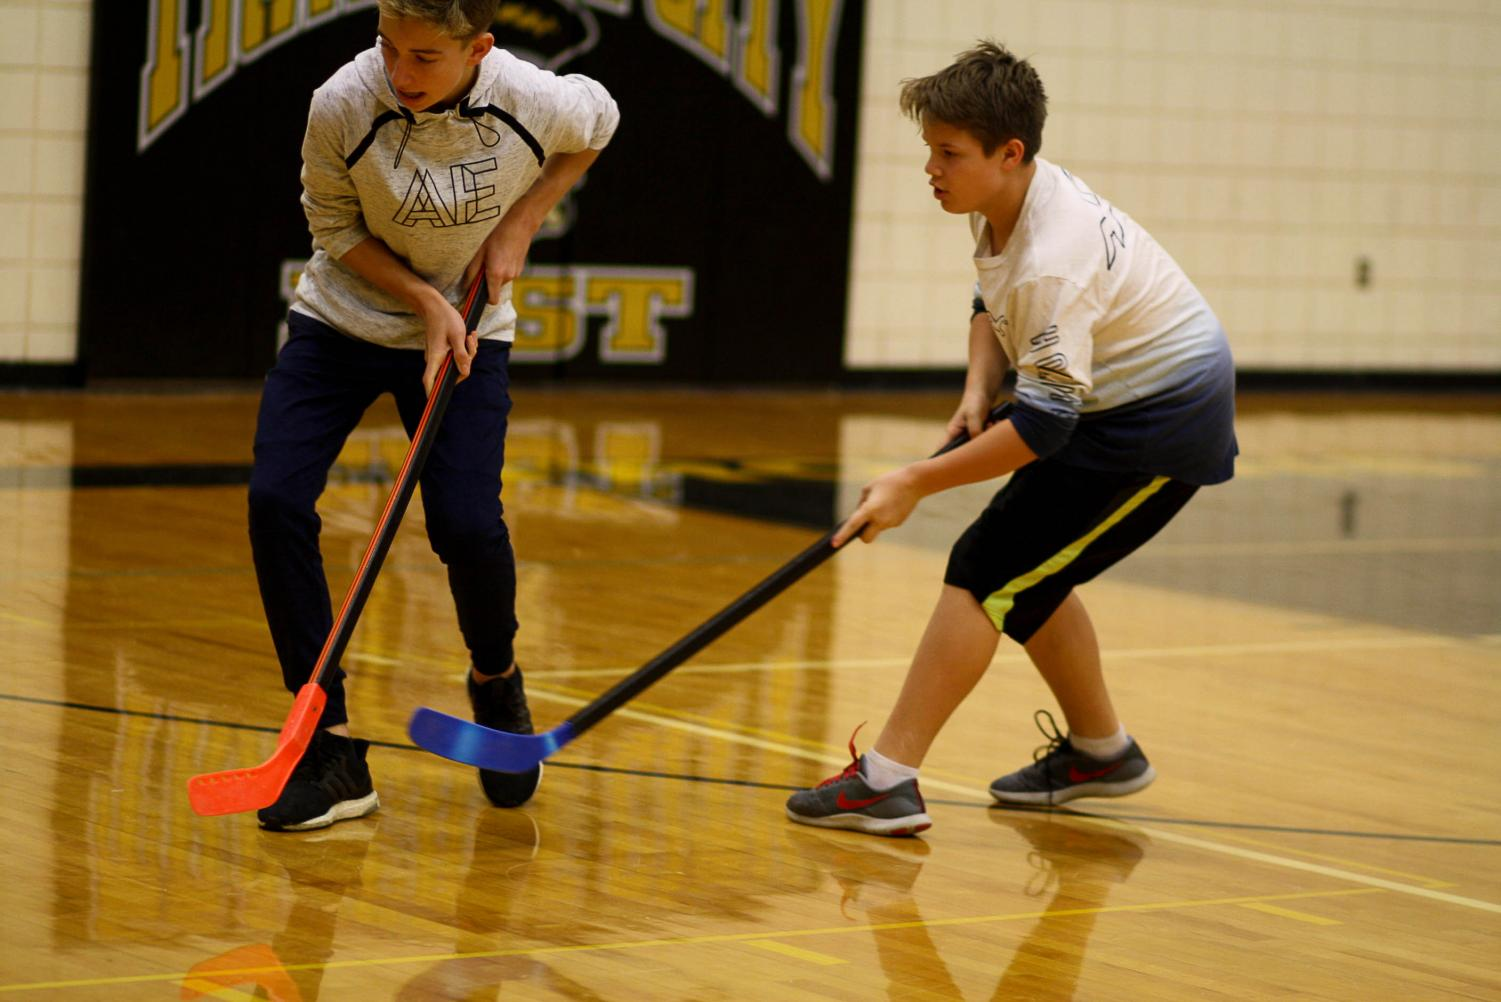 Joe Hebert and Matt Cook race for the puck in floor hockey. Photo by Yearbook student, Ashley Piper.